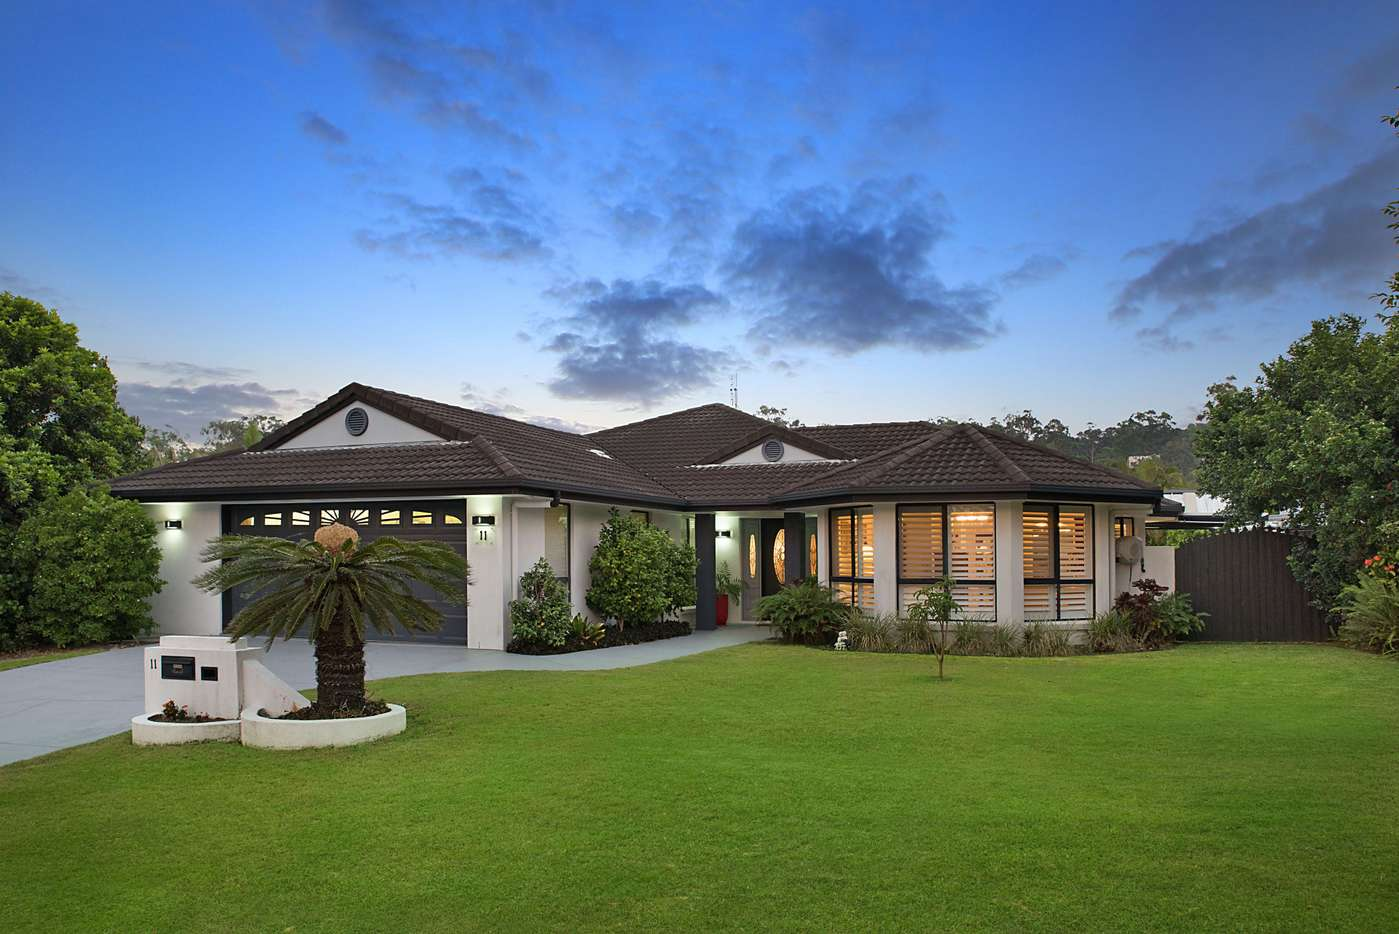 Main view of Homely house listing, 11 Barrier Close, Buderim, QLD 4556